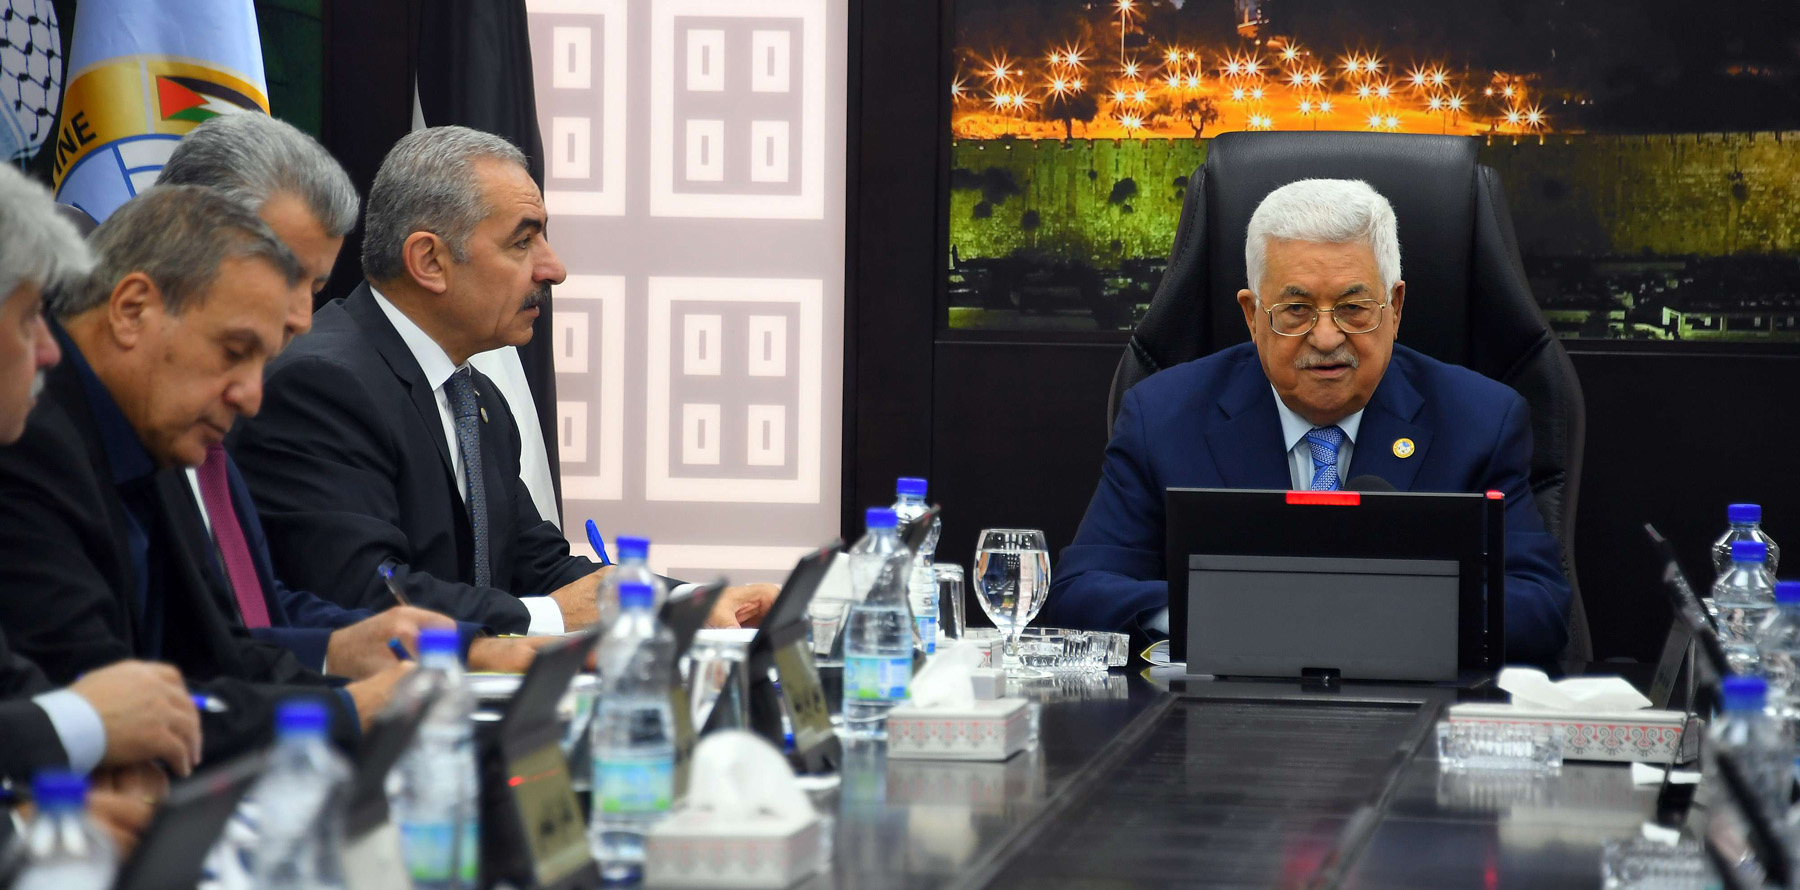 Palestinian President Mahmoud Abbas (R) chairs a cabinet meeting in Ramallah, April 29. (DPA)